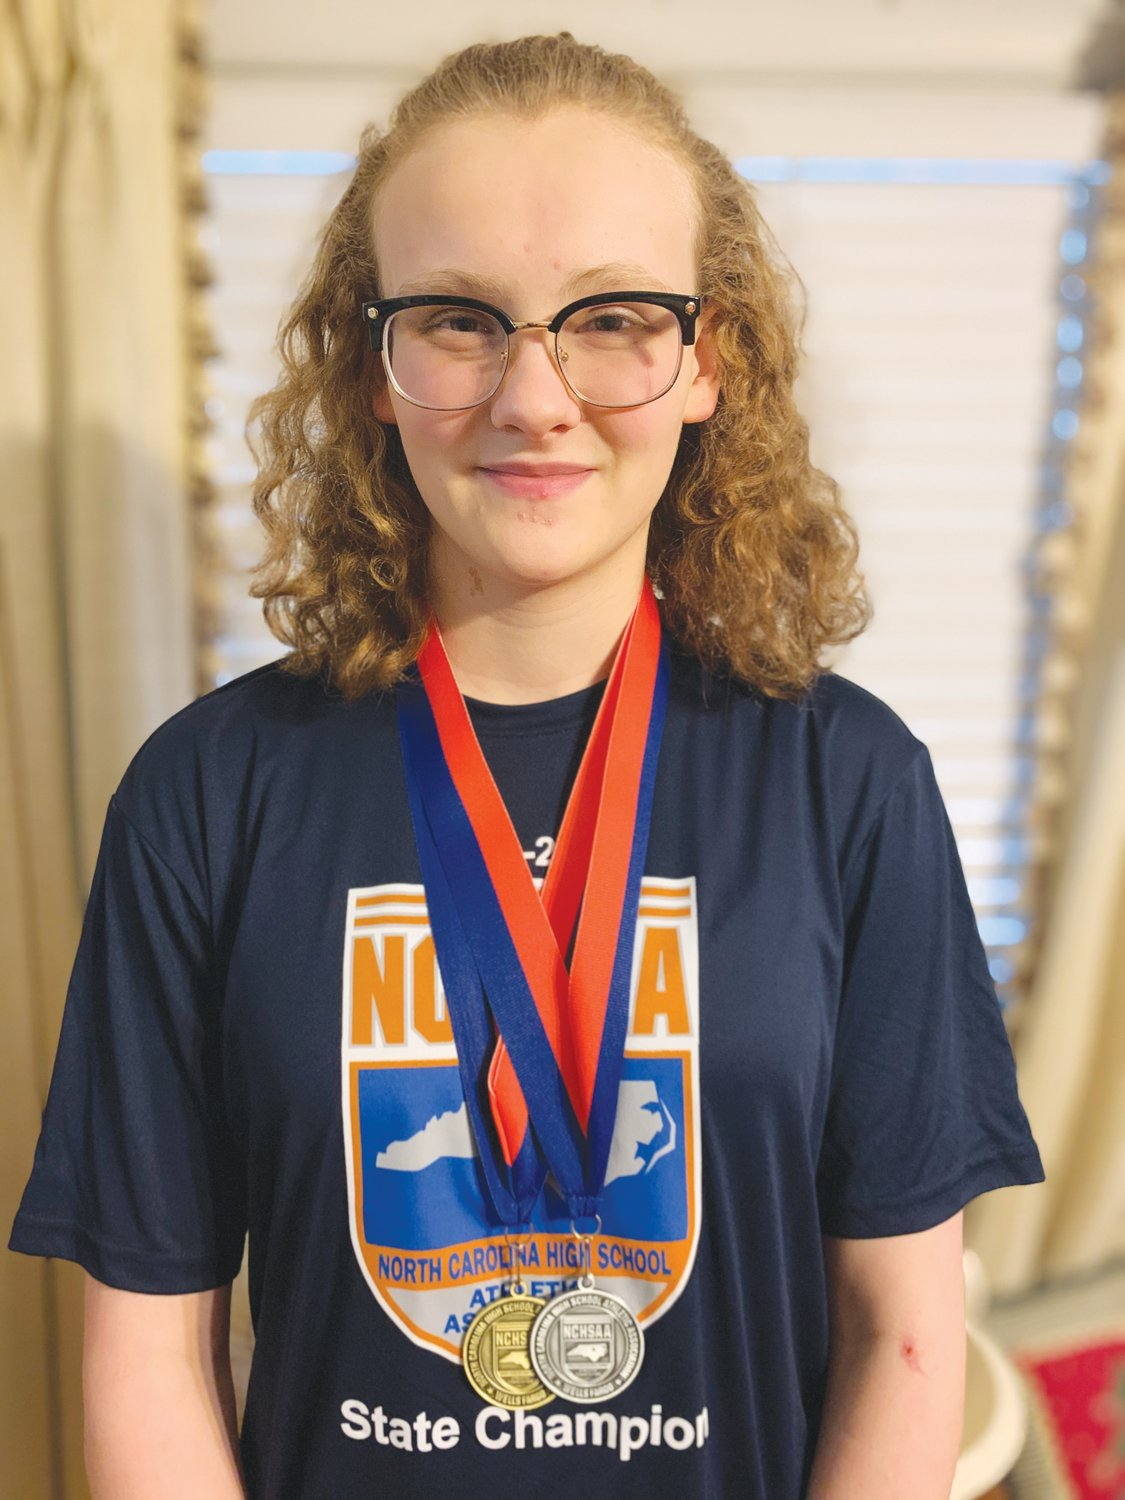 Jordan-Matthews' Jennah Fadely poses with the two medals she won at the NCHSAA 1A/2A Swimming State Championships on Friday in Cary. Fadely would take the state title with a record-setting time of 1:02.11 in the women's 100 breaststroke.